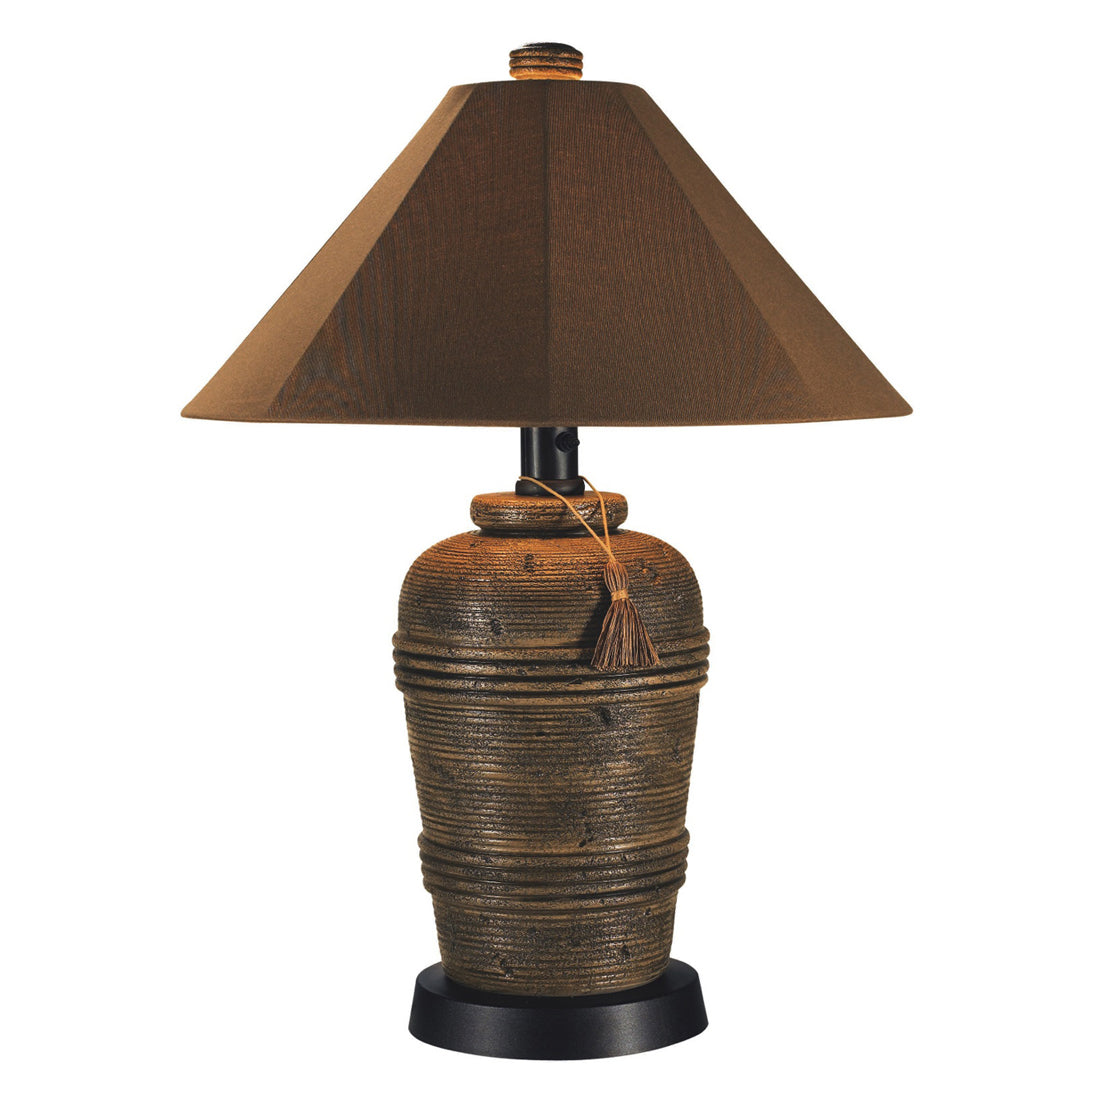 Canyon Outdoor Table Lamp 51910 with Nutmeg Sunbrella Shade